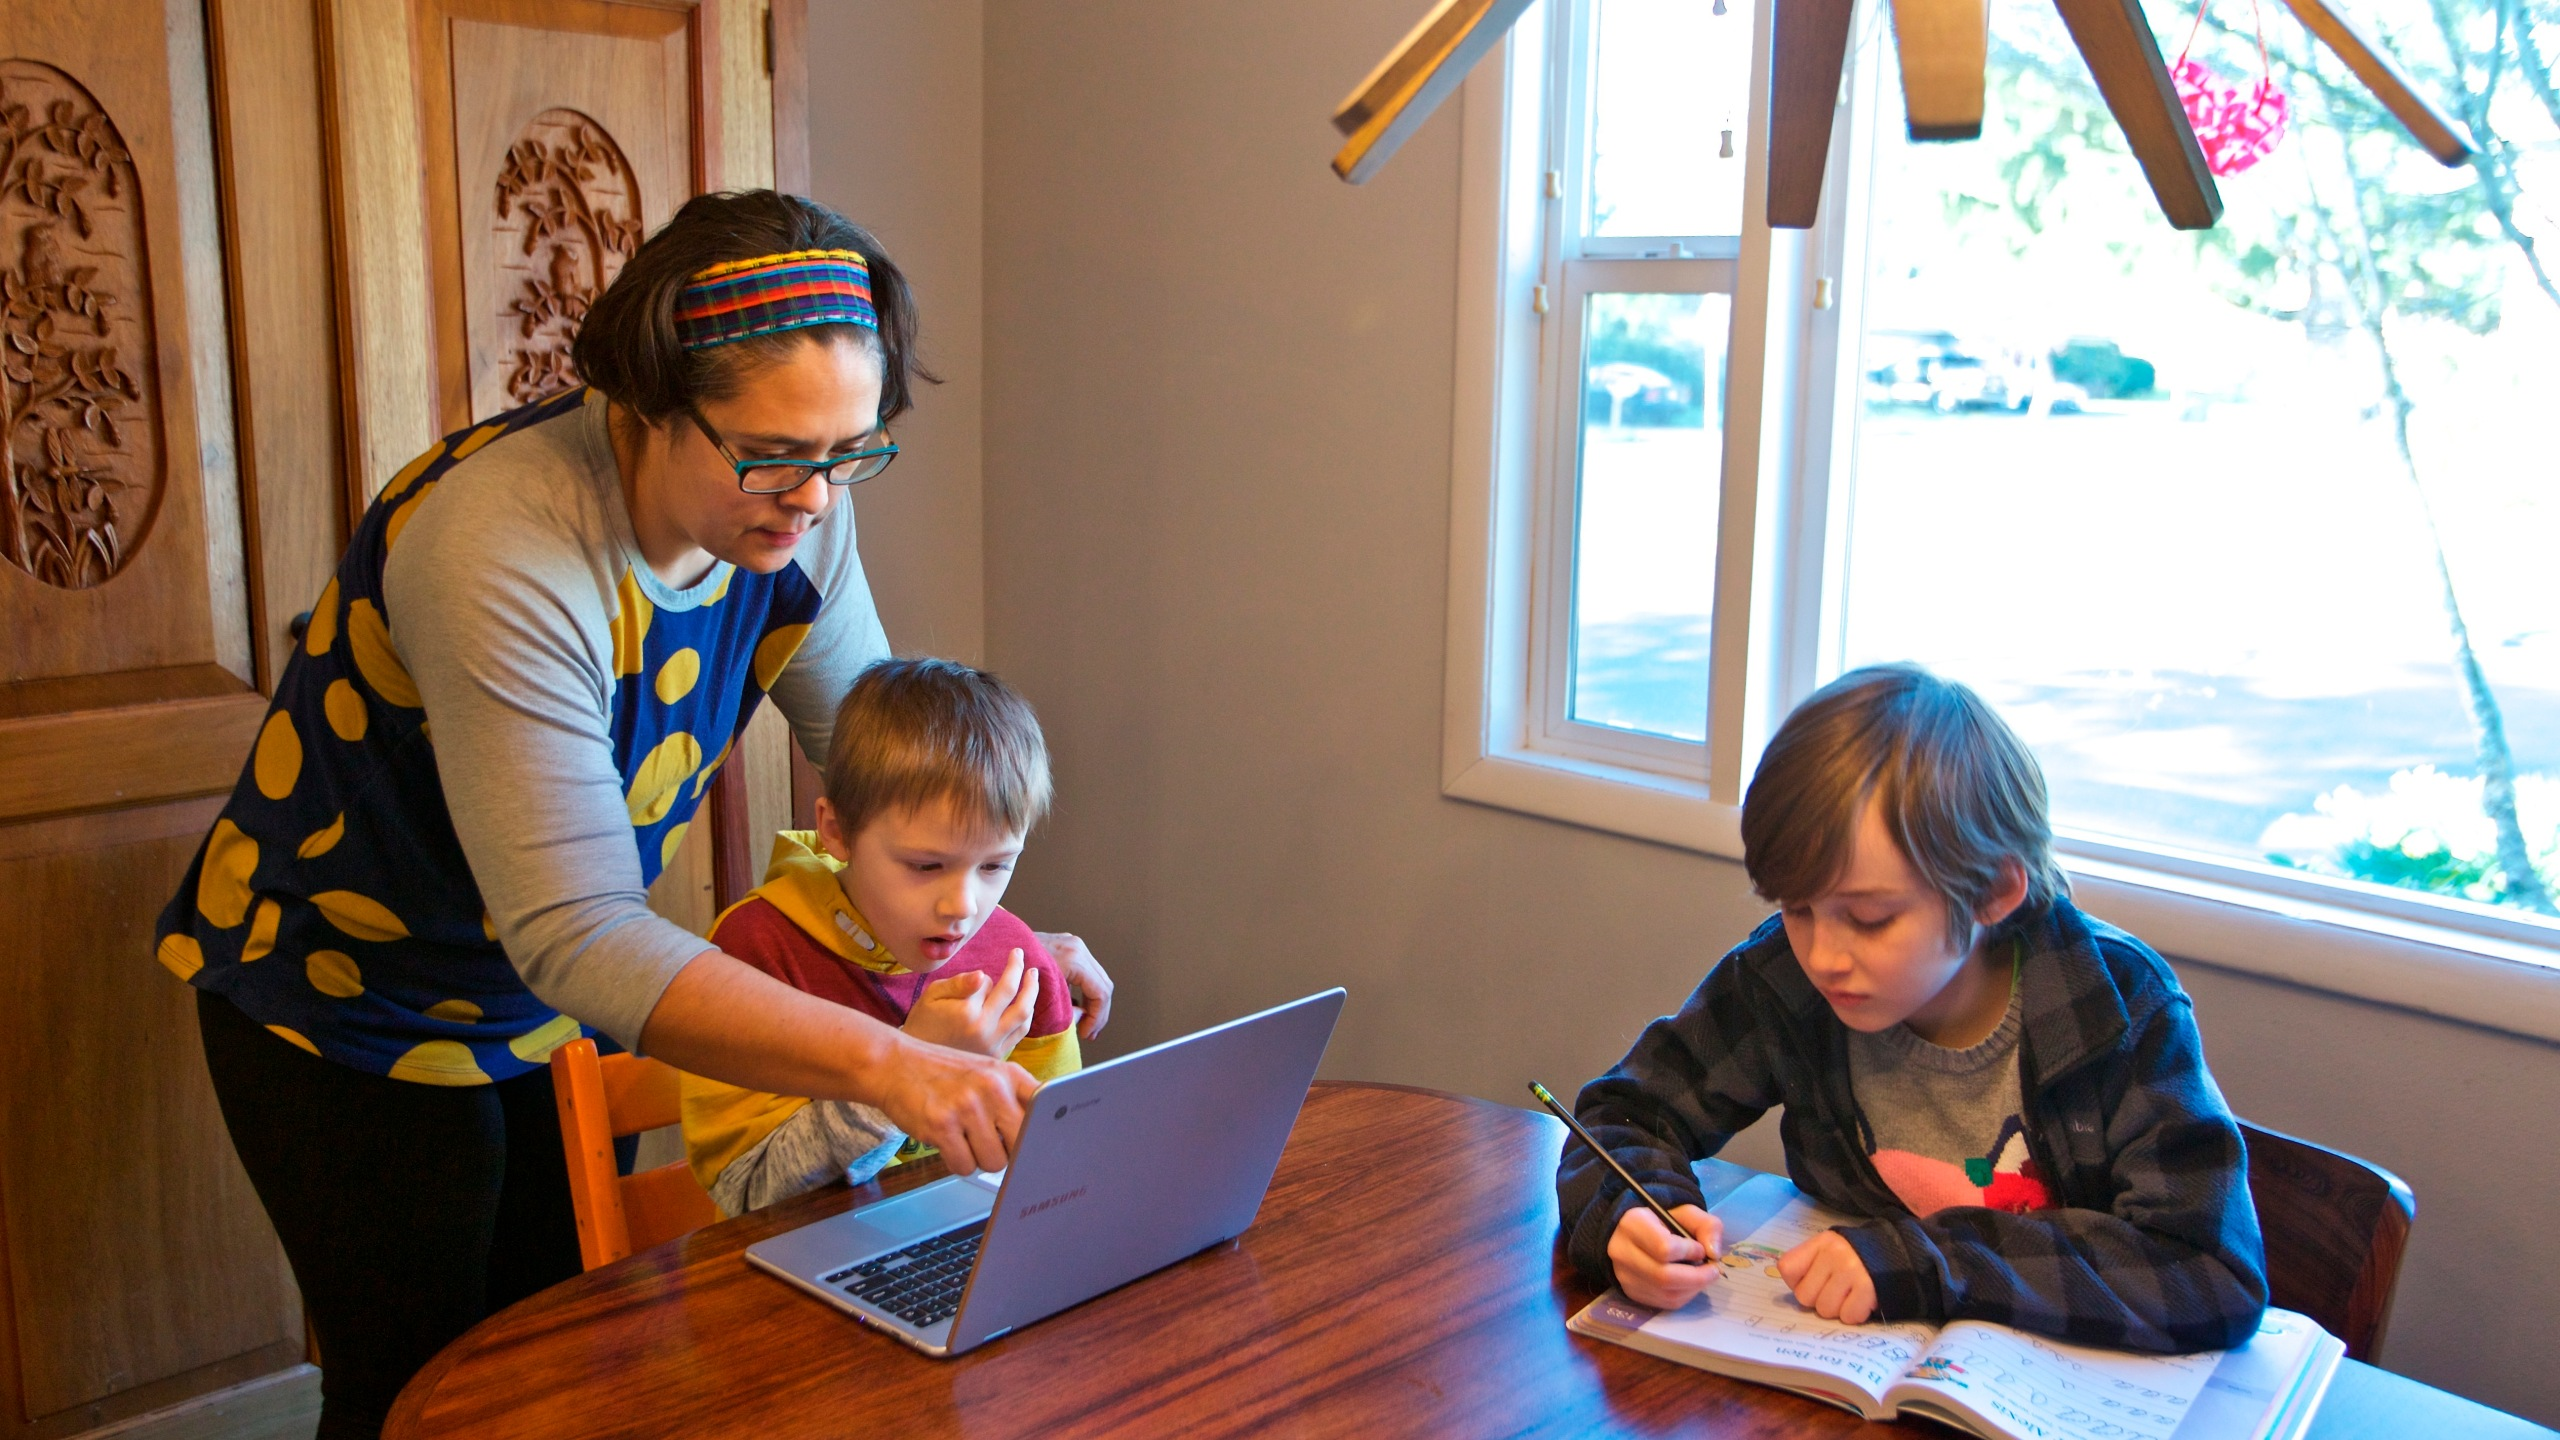 Olivia Bucks, left, helps her son Keith Bucks, center, with an online class assignment while Ashton Morris, right, works on a handwriting lesson from their first grade class at Arco Iris Spanish Immersion School in Beaverton, Ore. Bucks works from home selling books online and now spends her time between working on her business and helping her sons with their school work. They are using her work laptop to access their classroom assignments. (AP Photo/Craig Mitchelldyer)